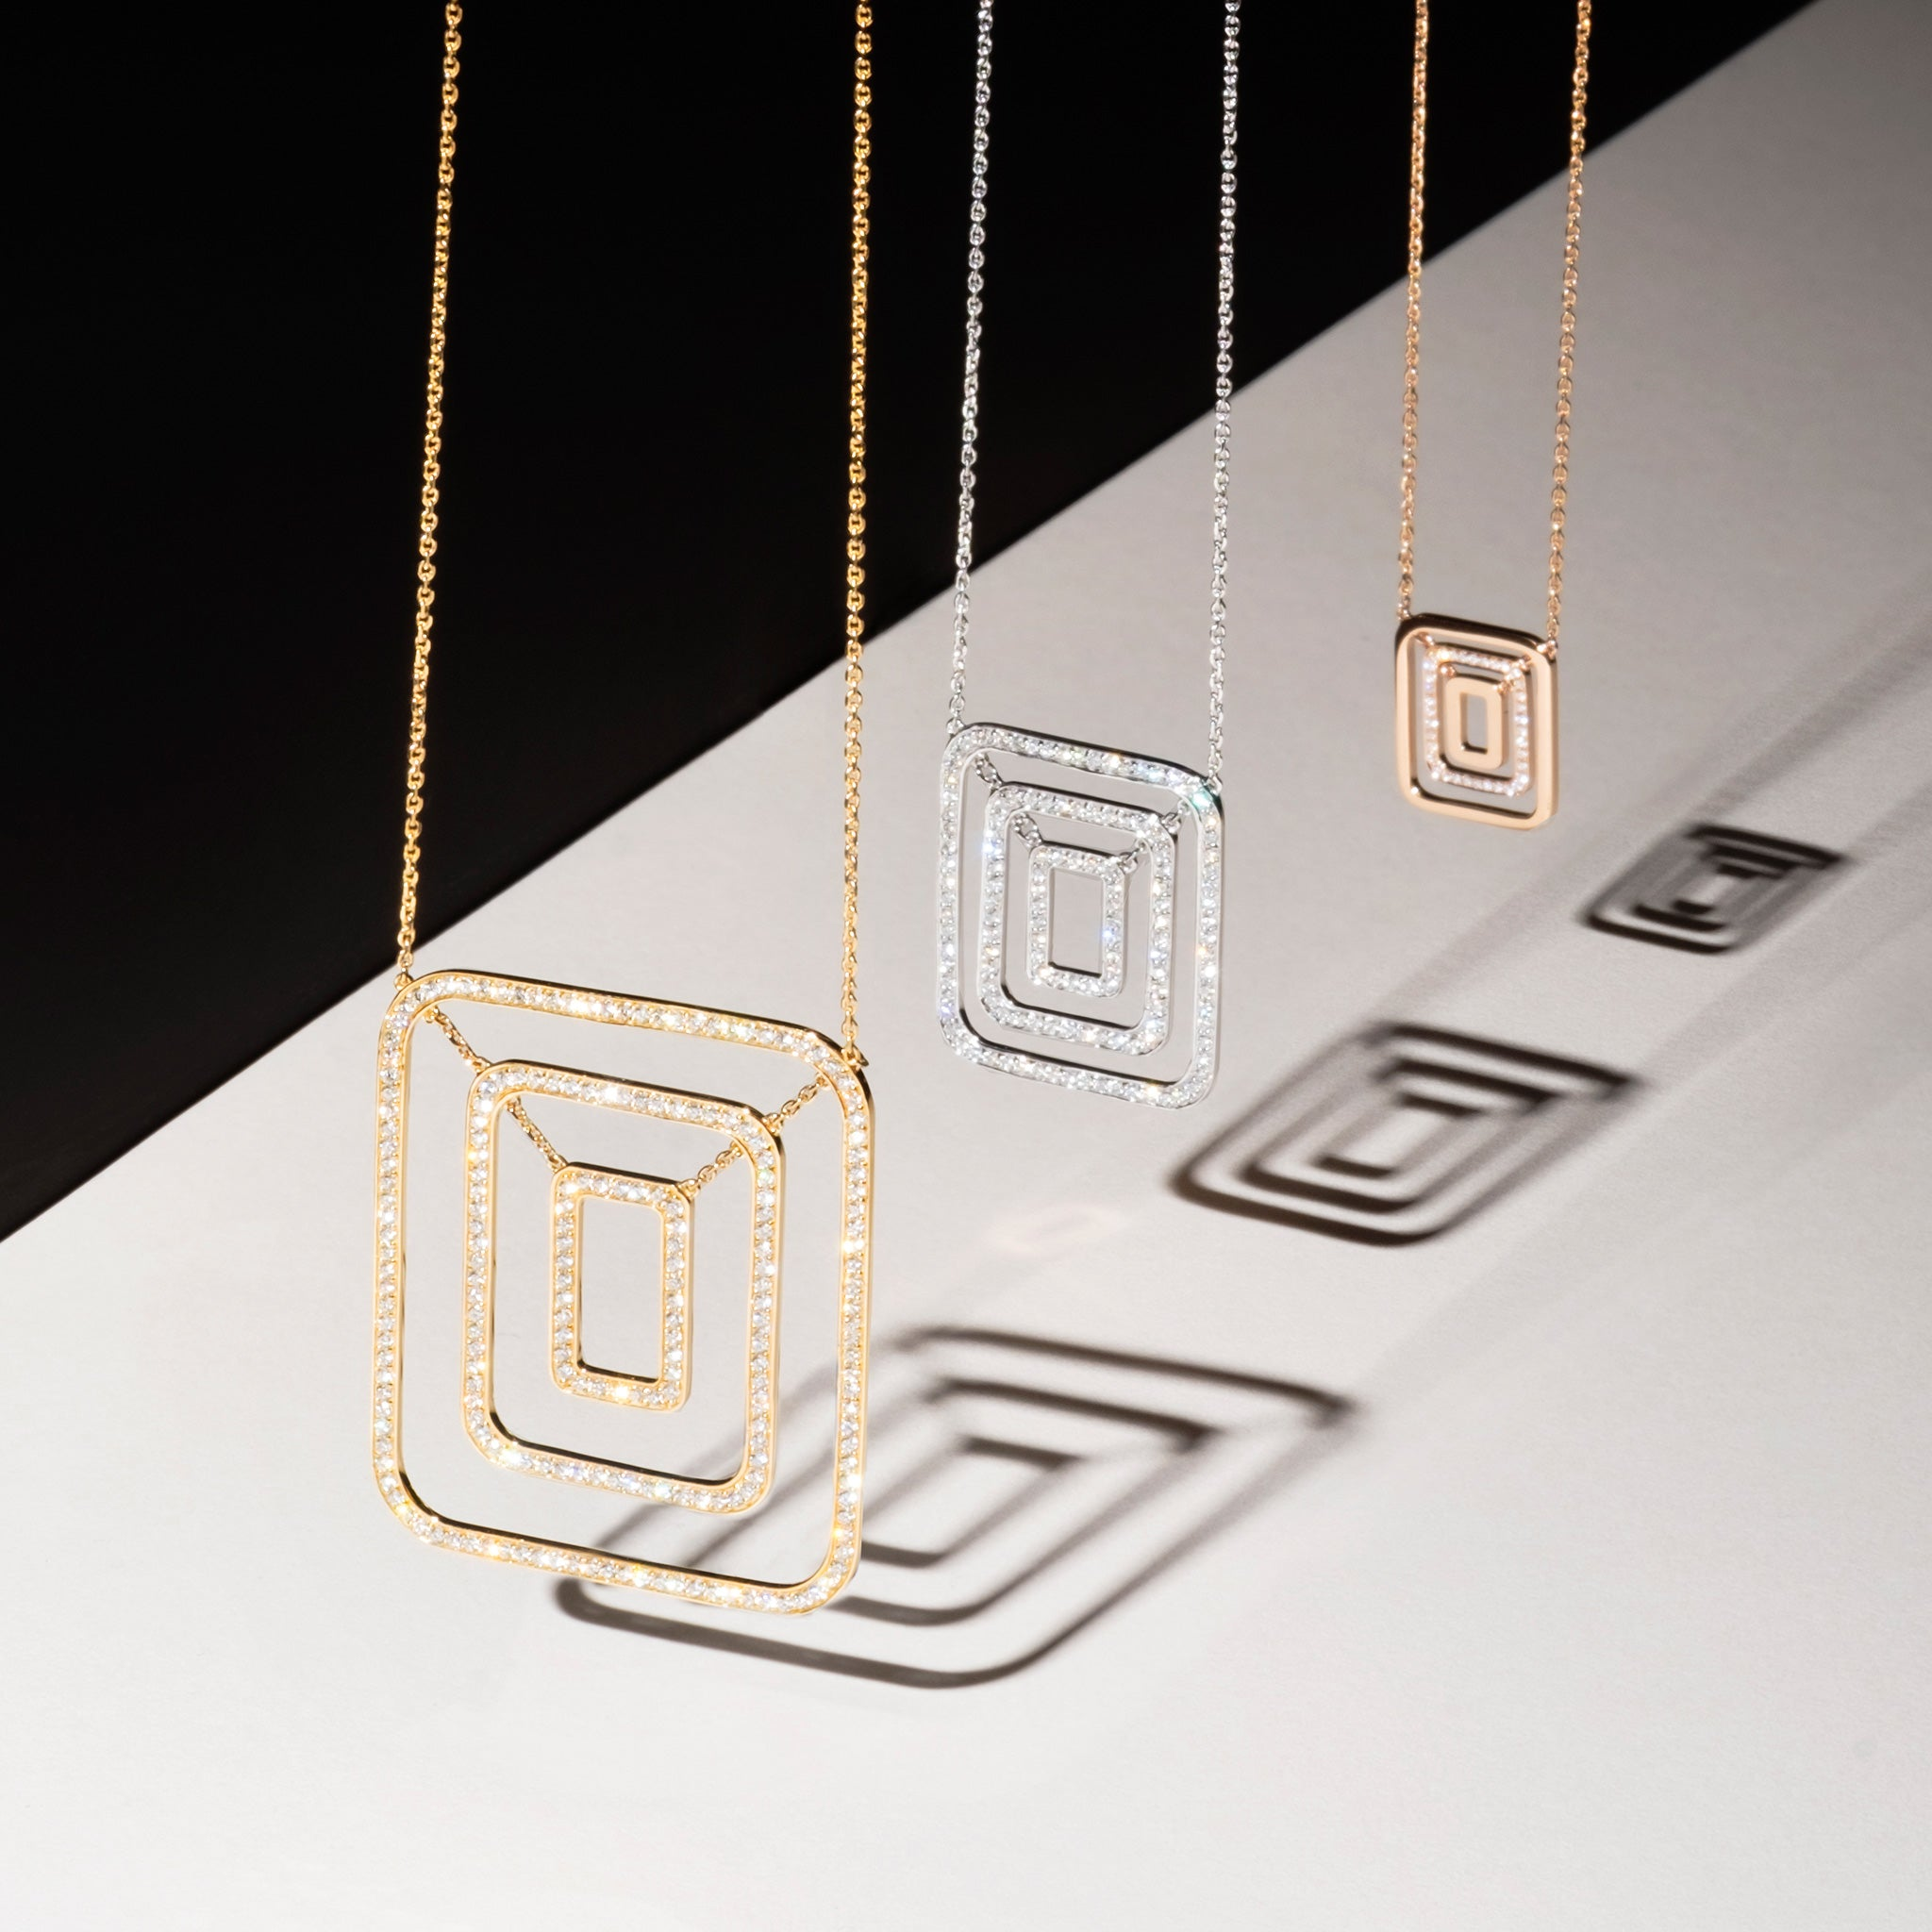 Mimi-So-PIece-Square-Swing-Necklaces